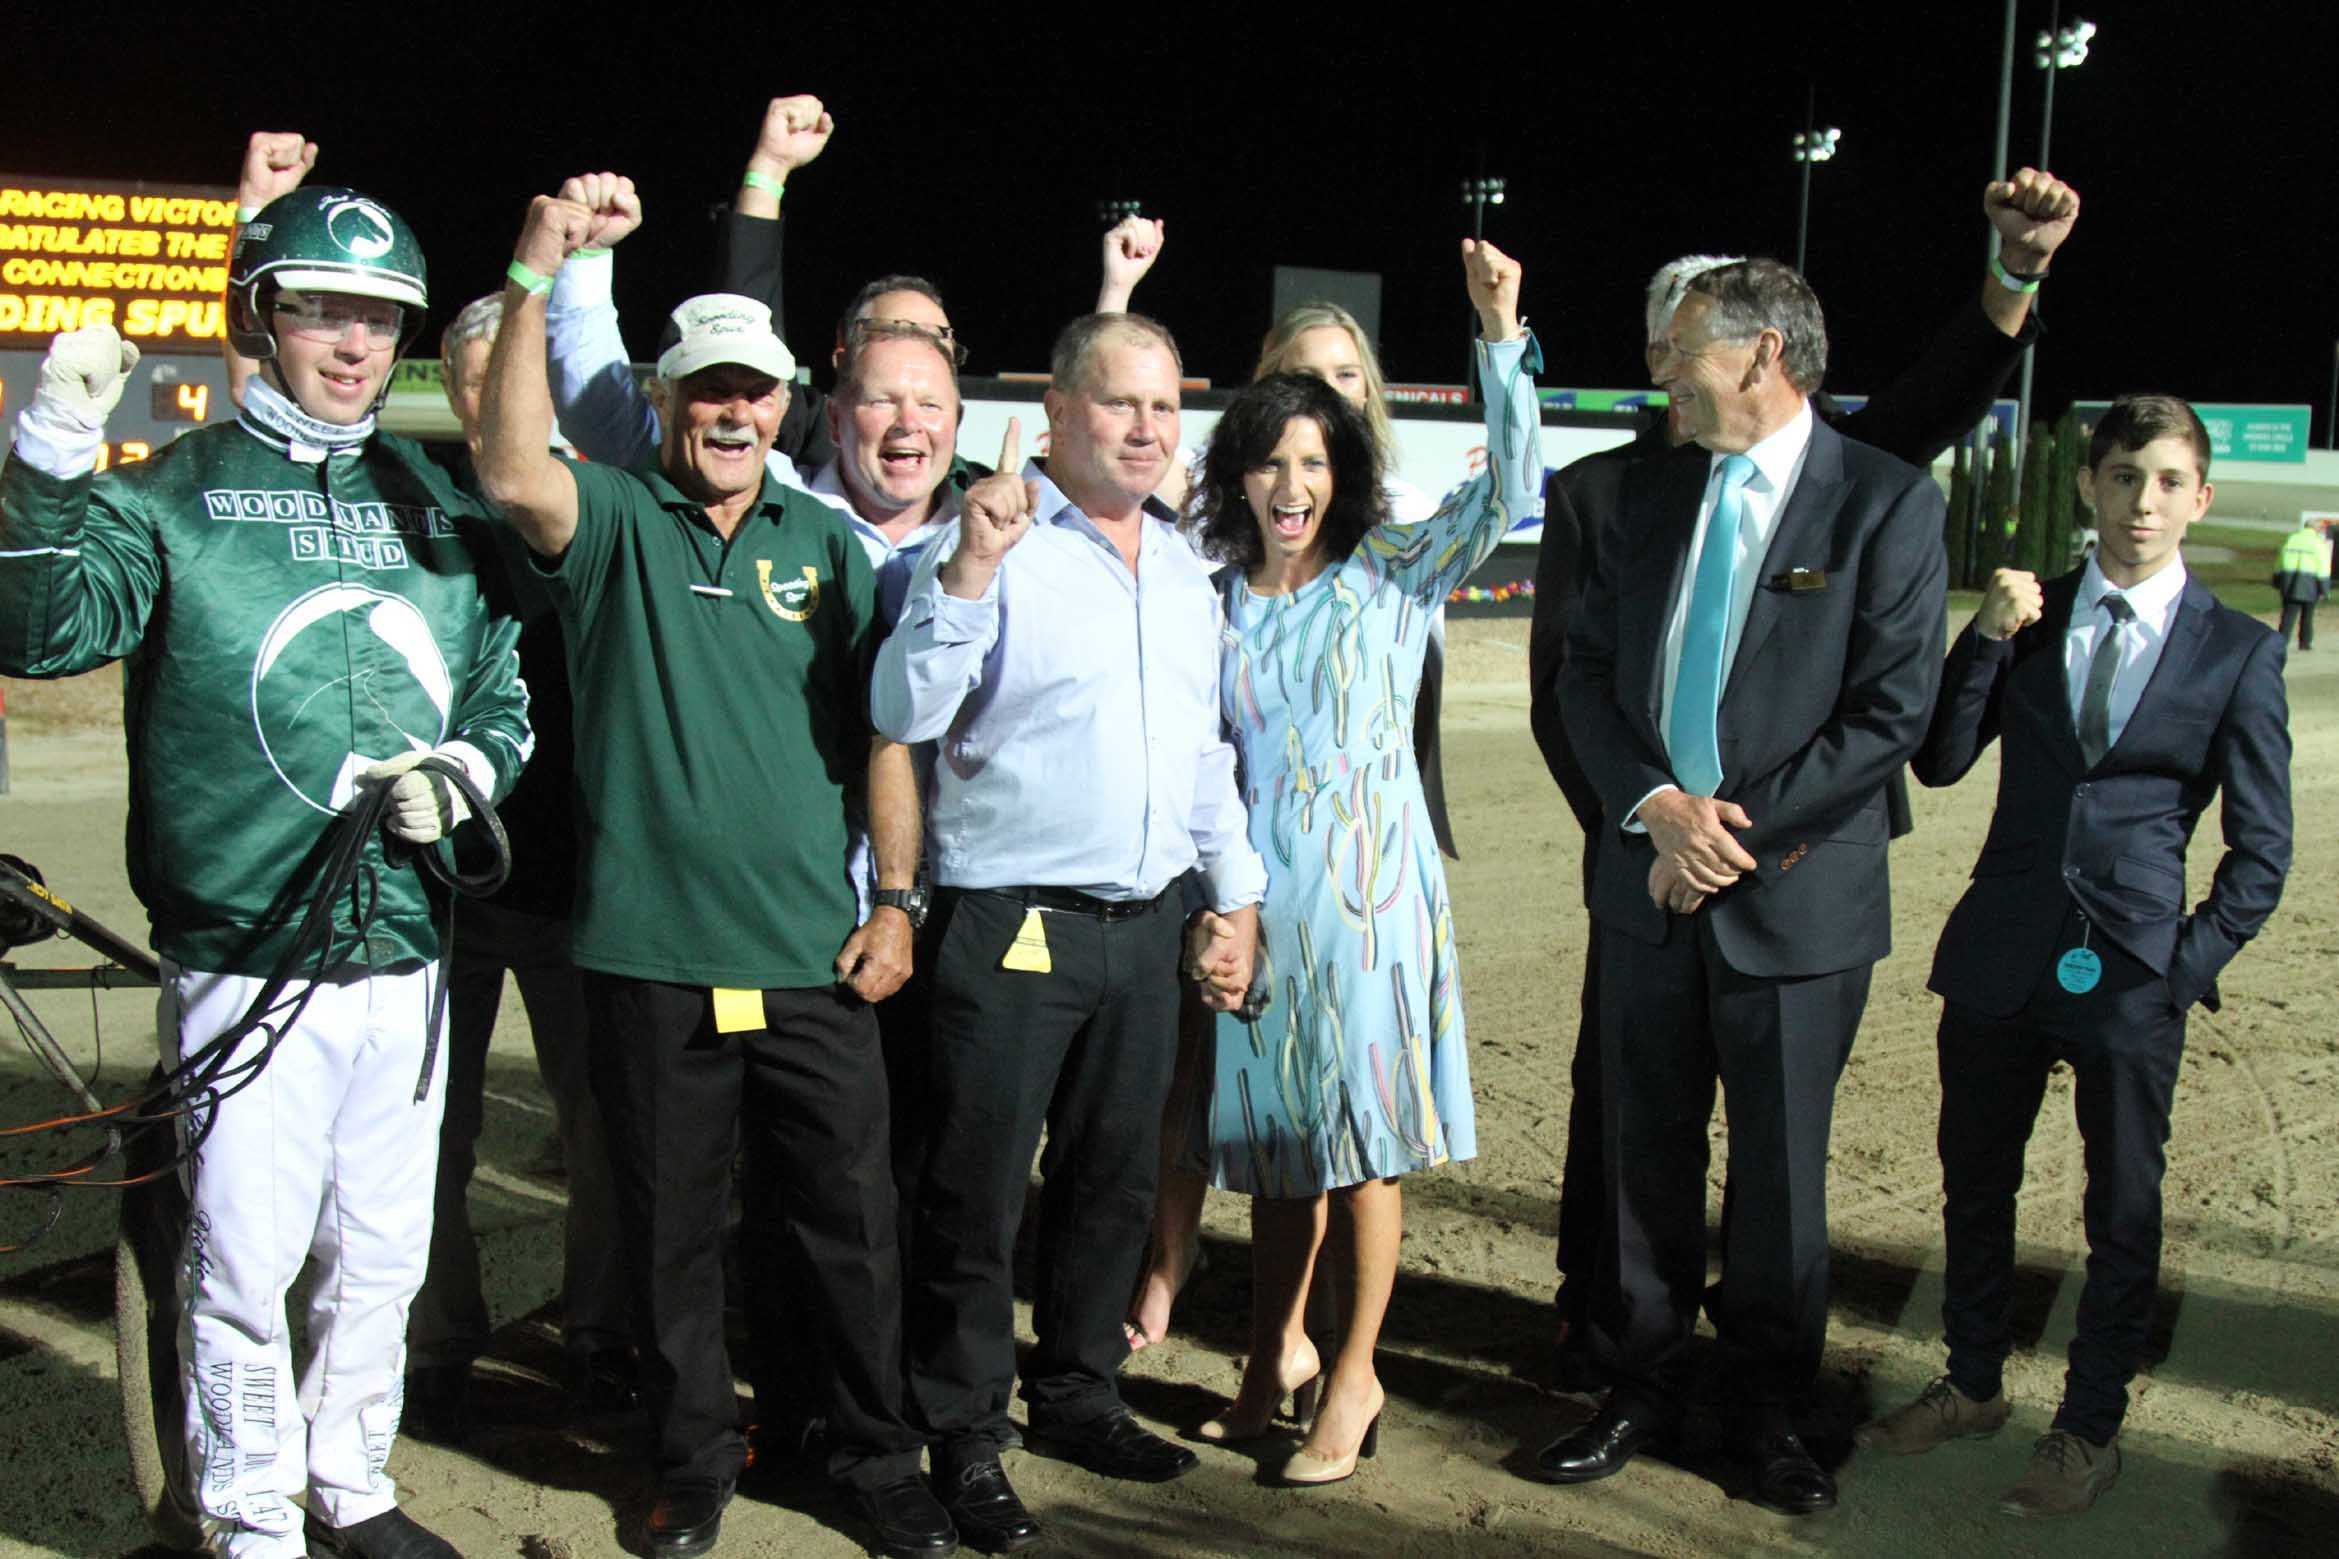 WOODLANDS PARTNERSHIP SYNDICATE 1 AFTER SPeeDING SPURS SUCCESS IN THE GROUP 1 Great Southern STar